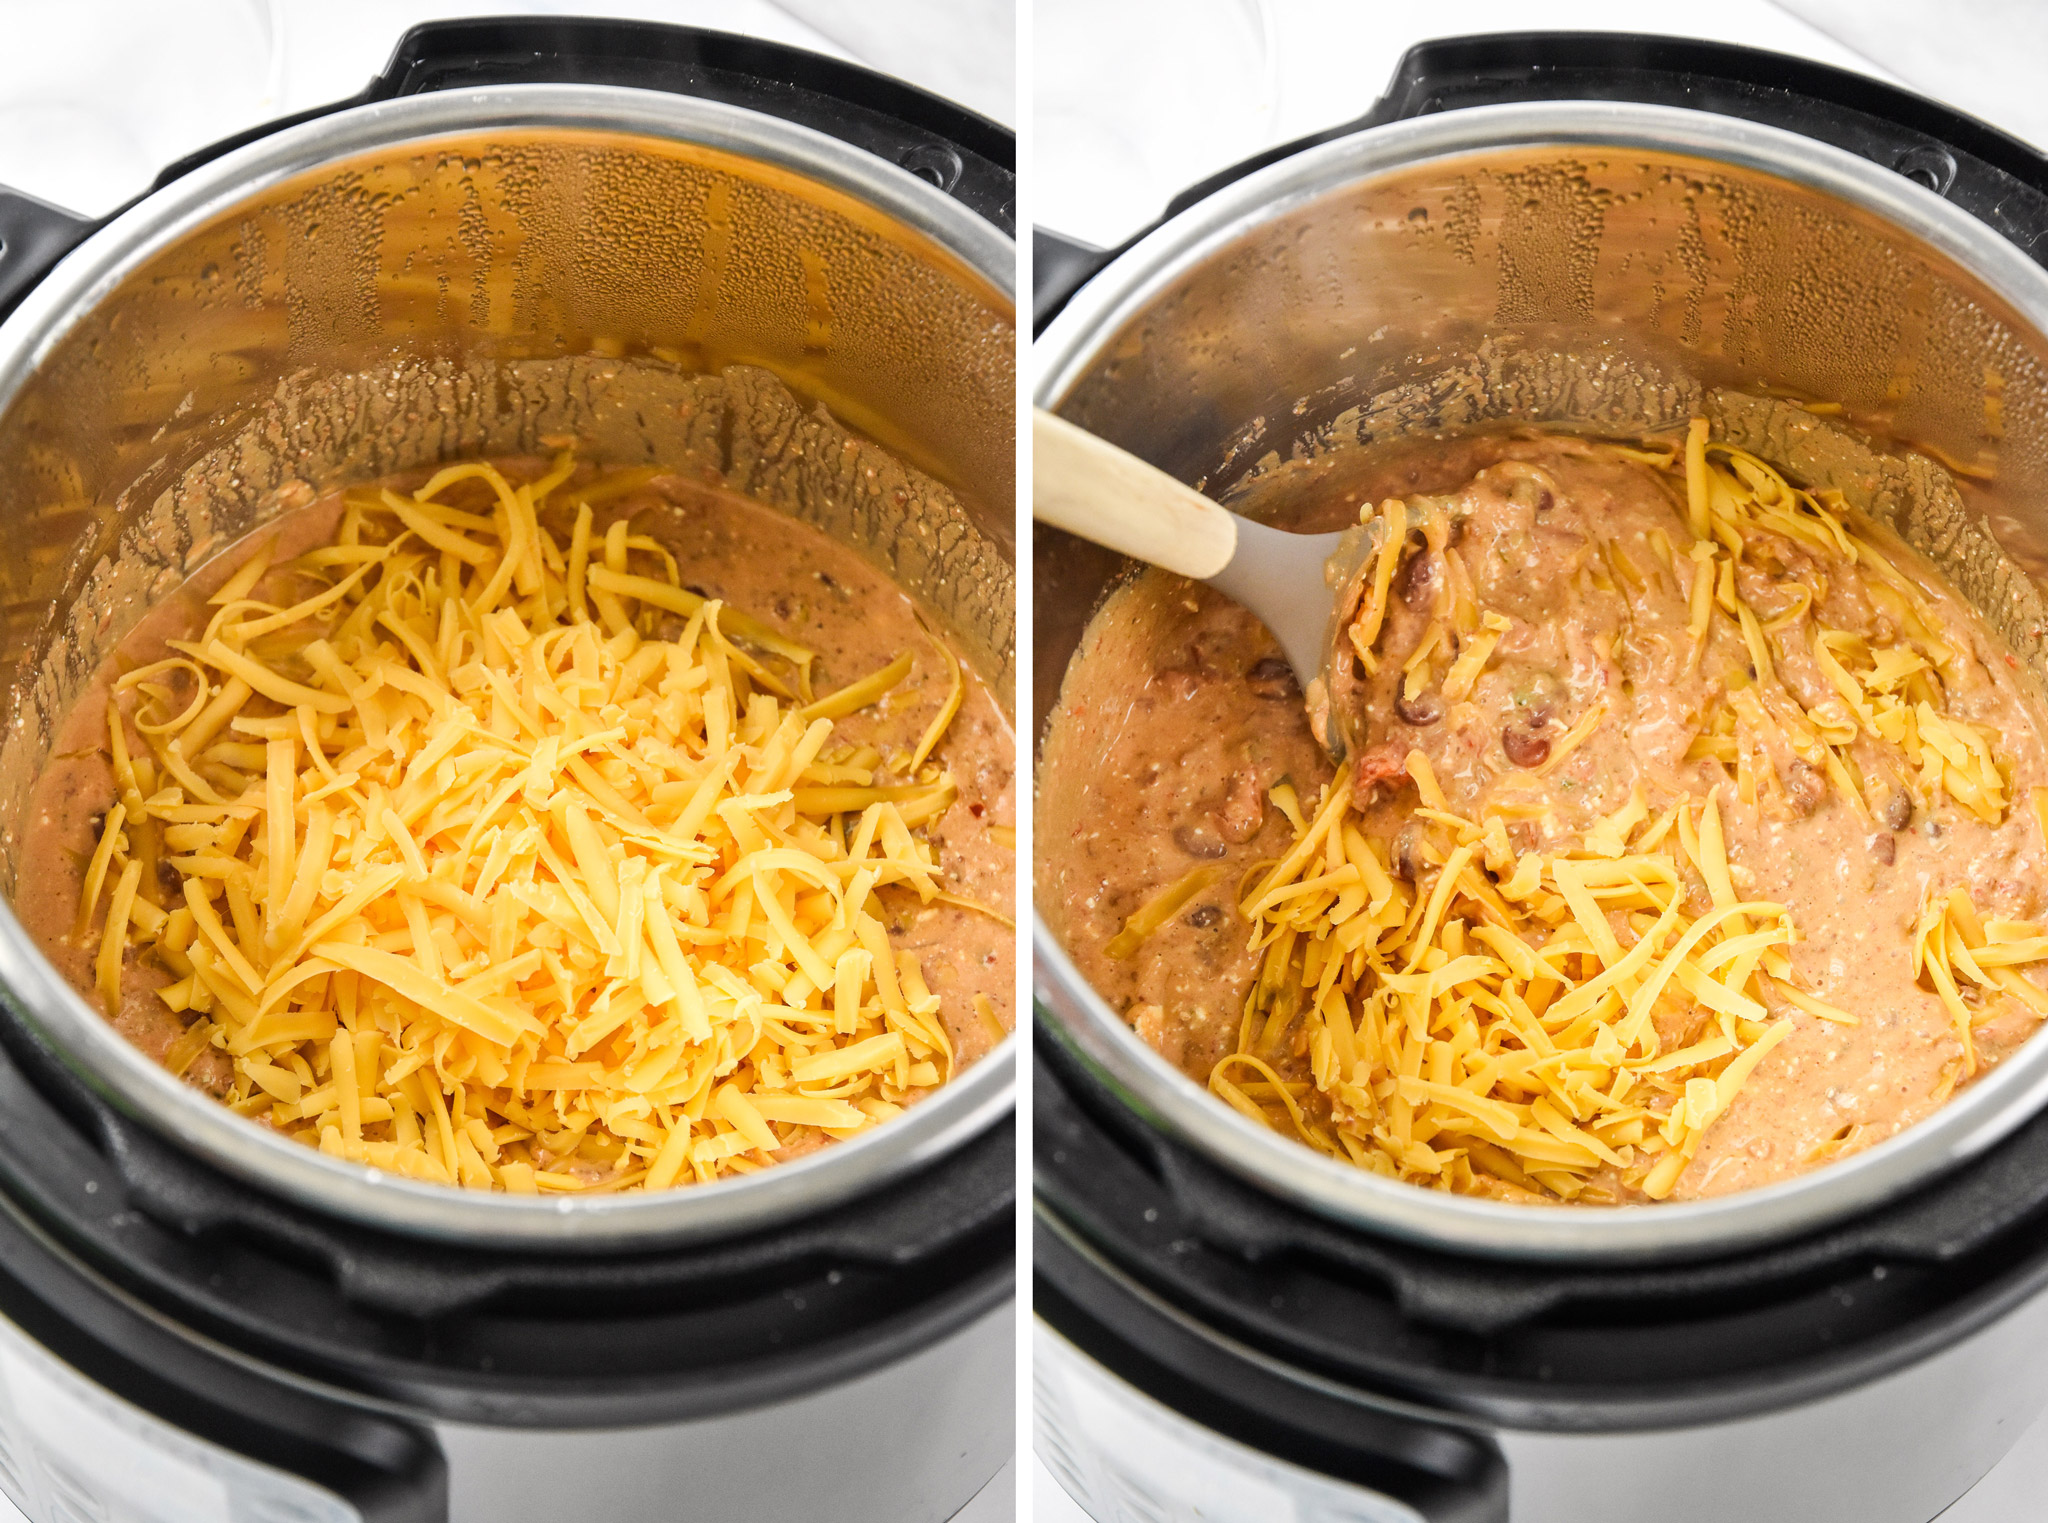 adding cheese to the instant pot for the chili cheese dip